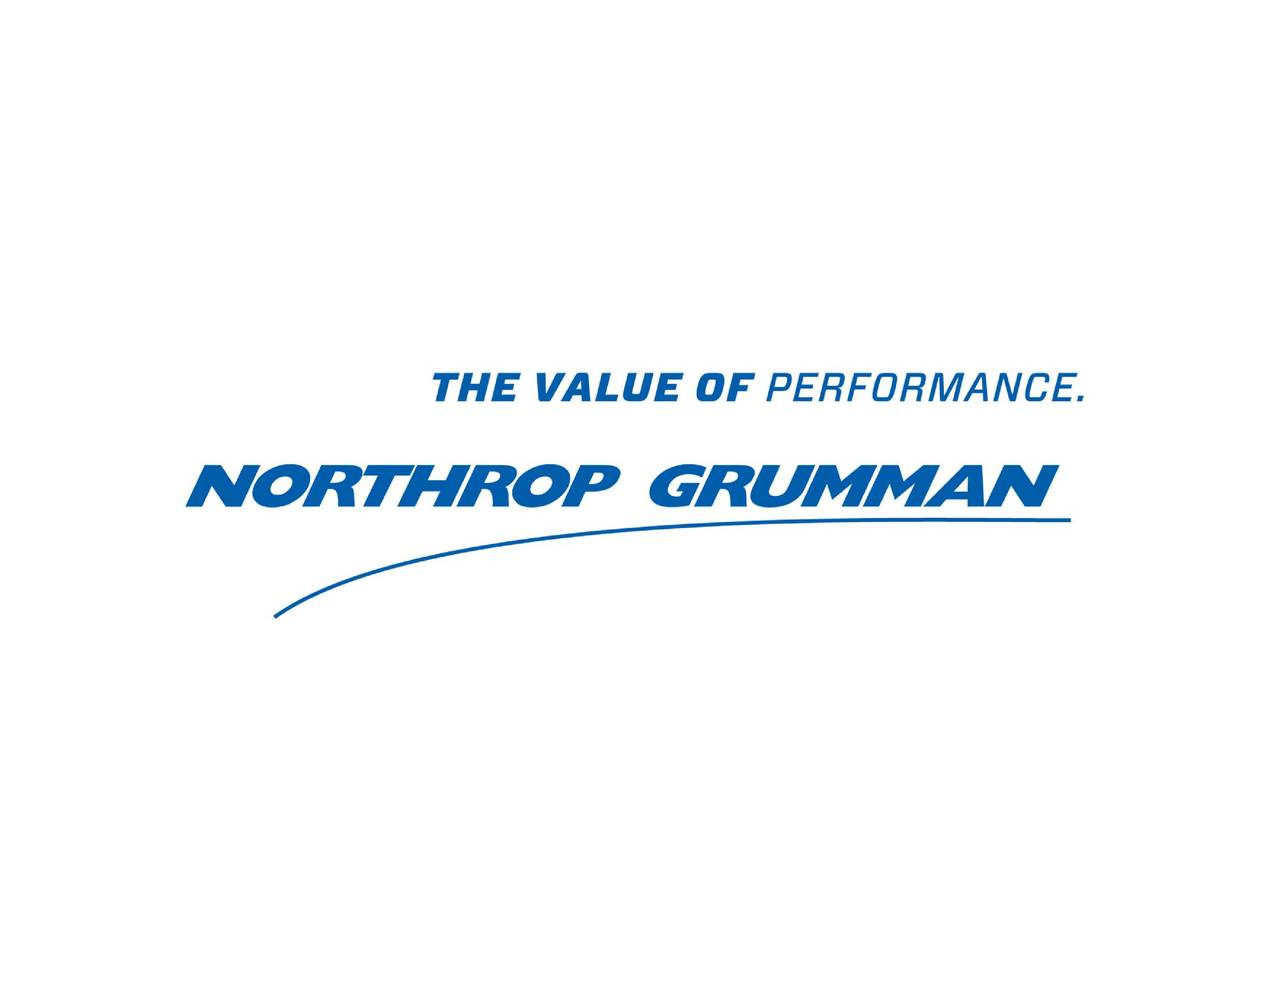 financial analysis of northrop grumman Conduct financial analysis of risk factors related to prospective products and investments for the nation's  financial analyst at northrop grumman northrop.